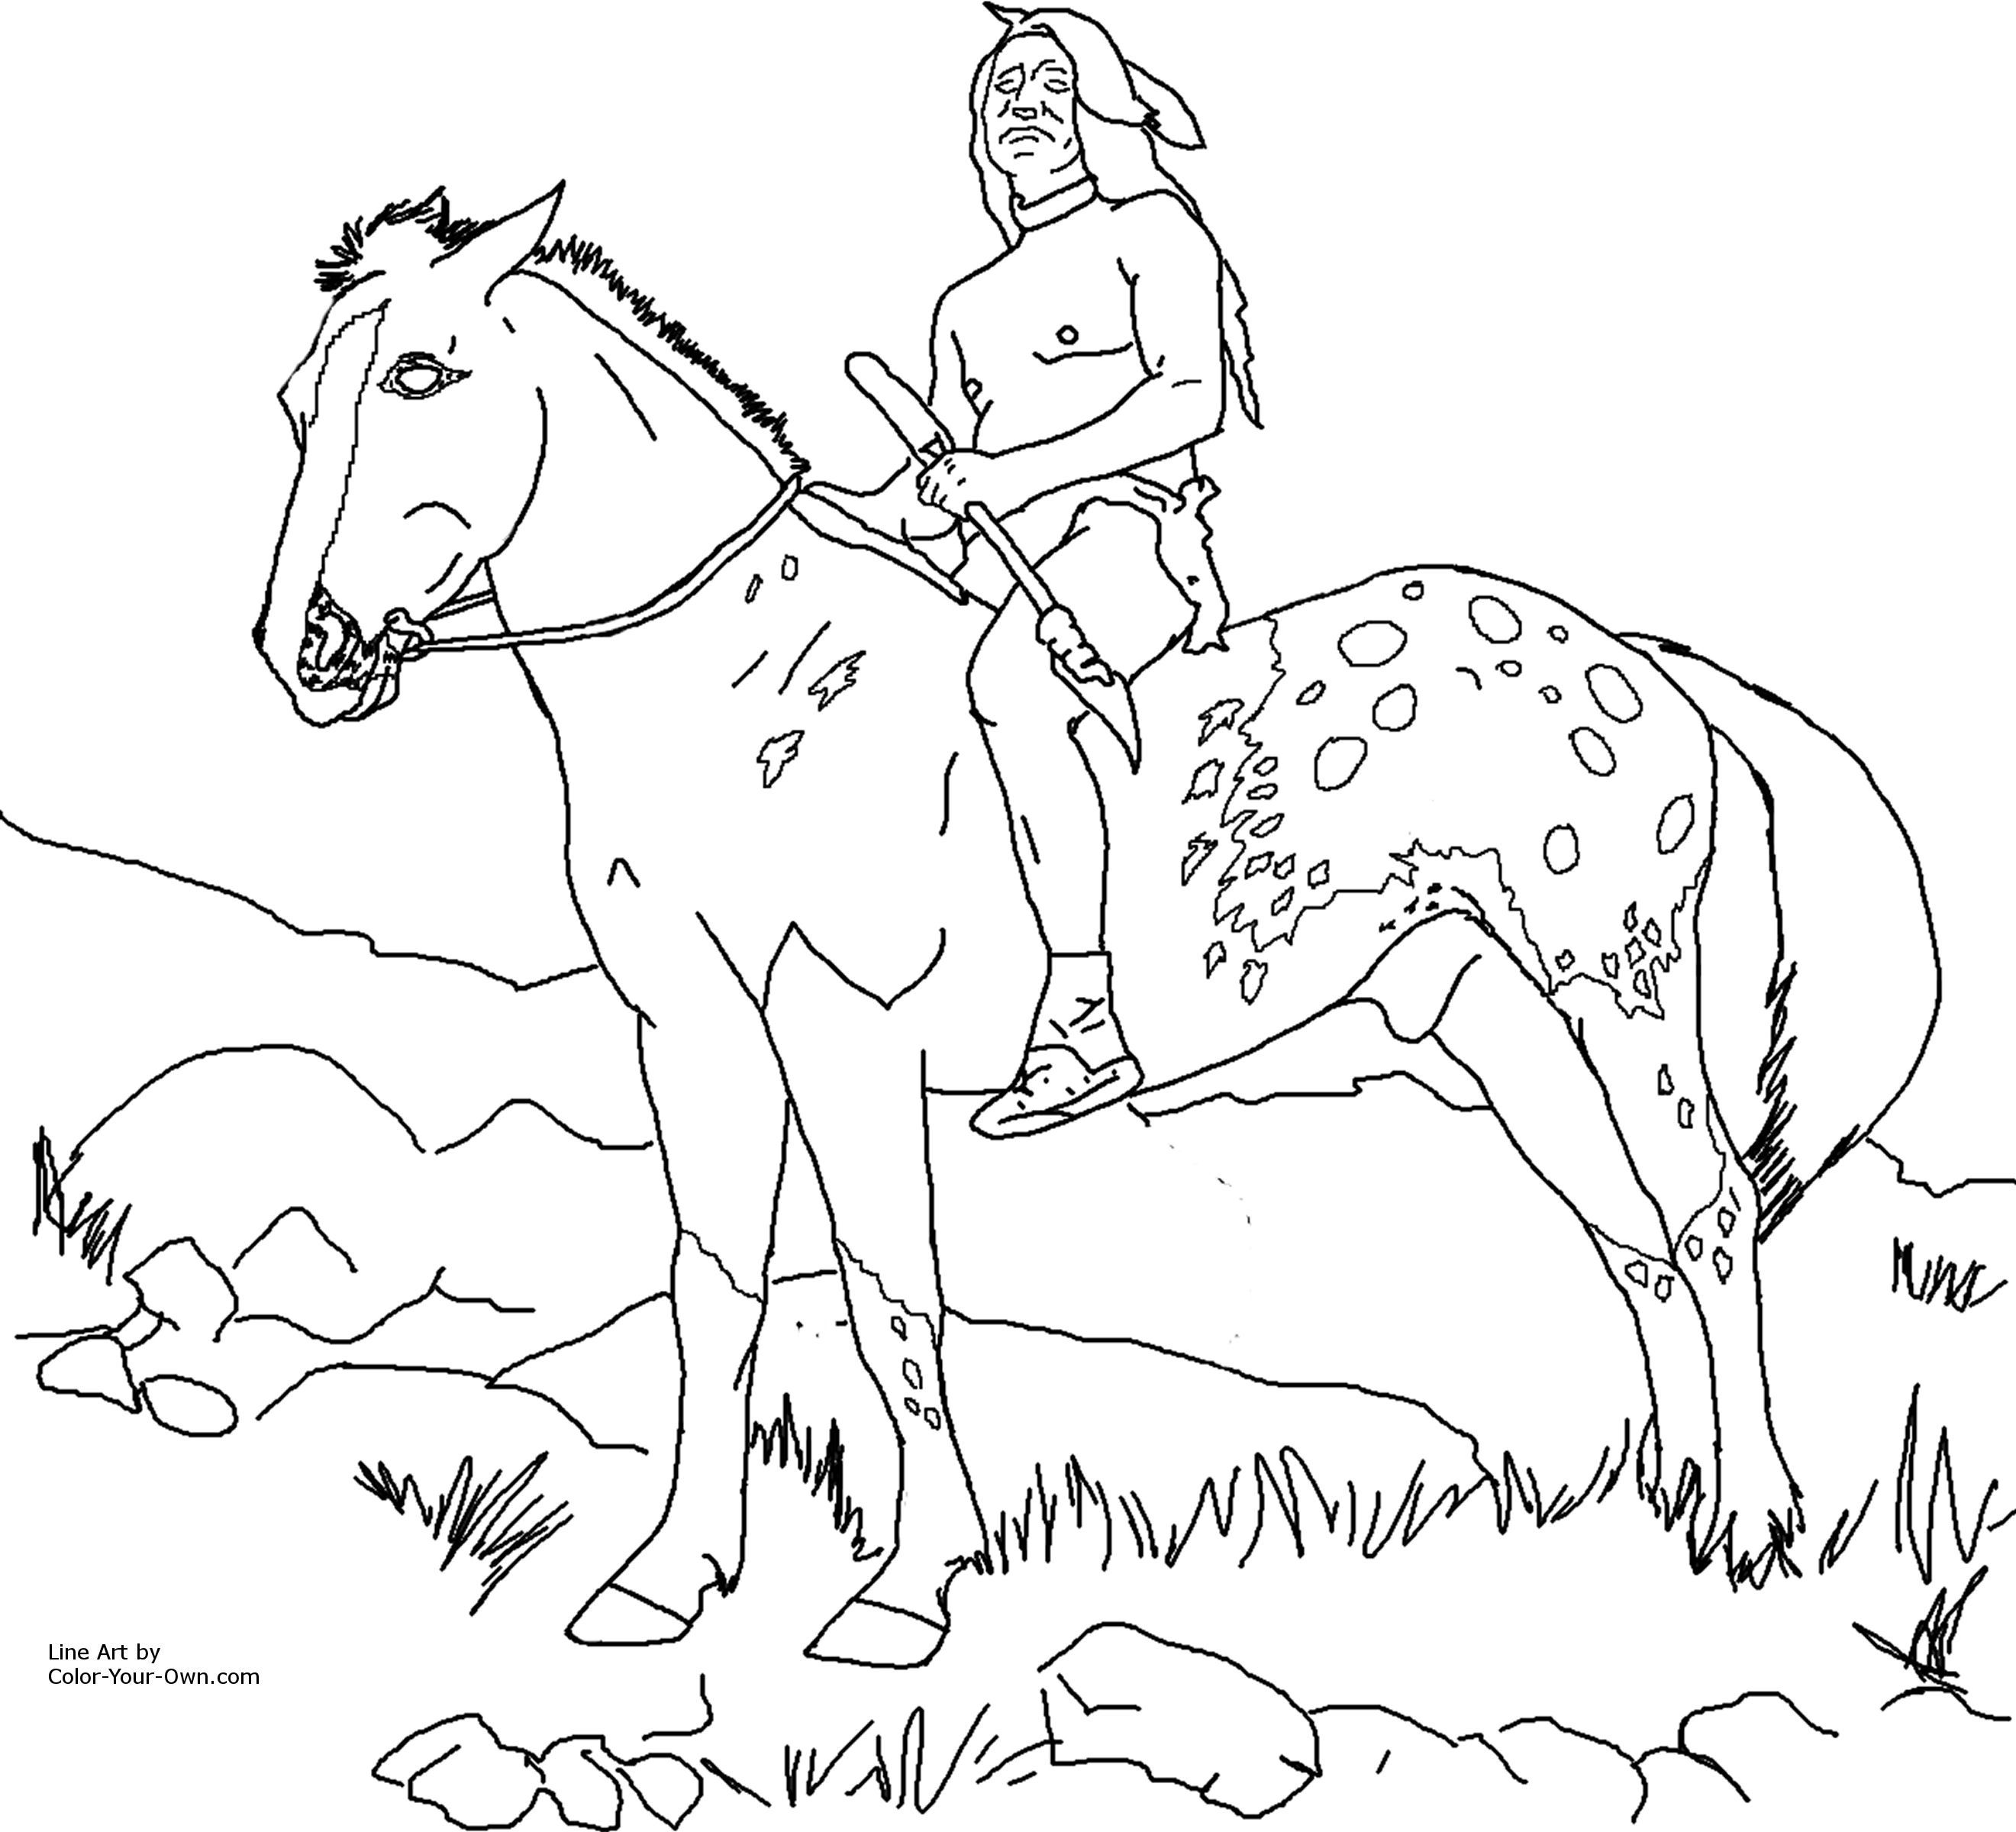 Native American Coloring Pages native american designs coloring ...